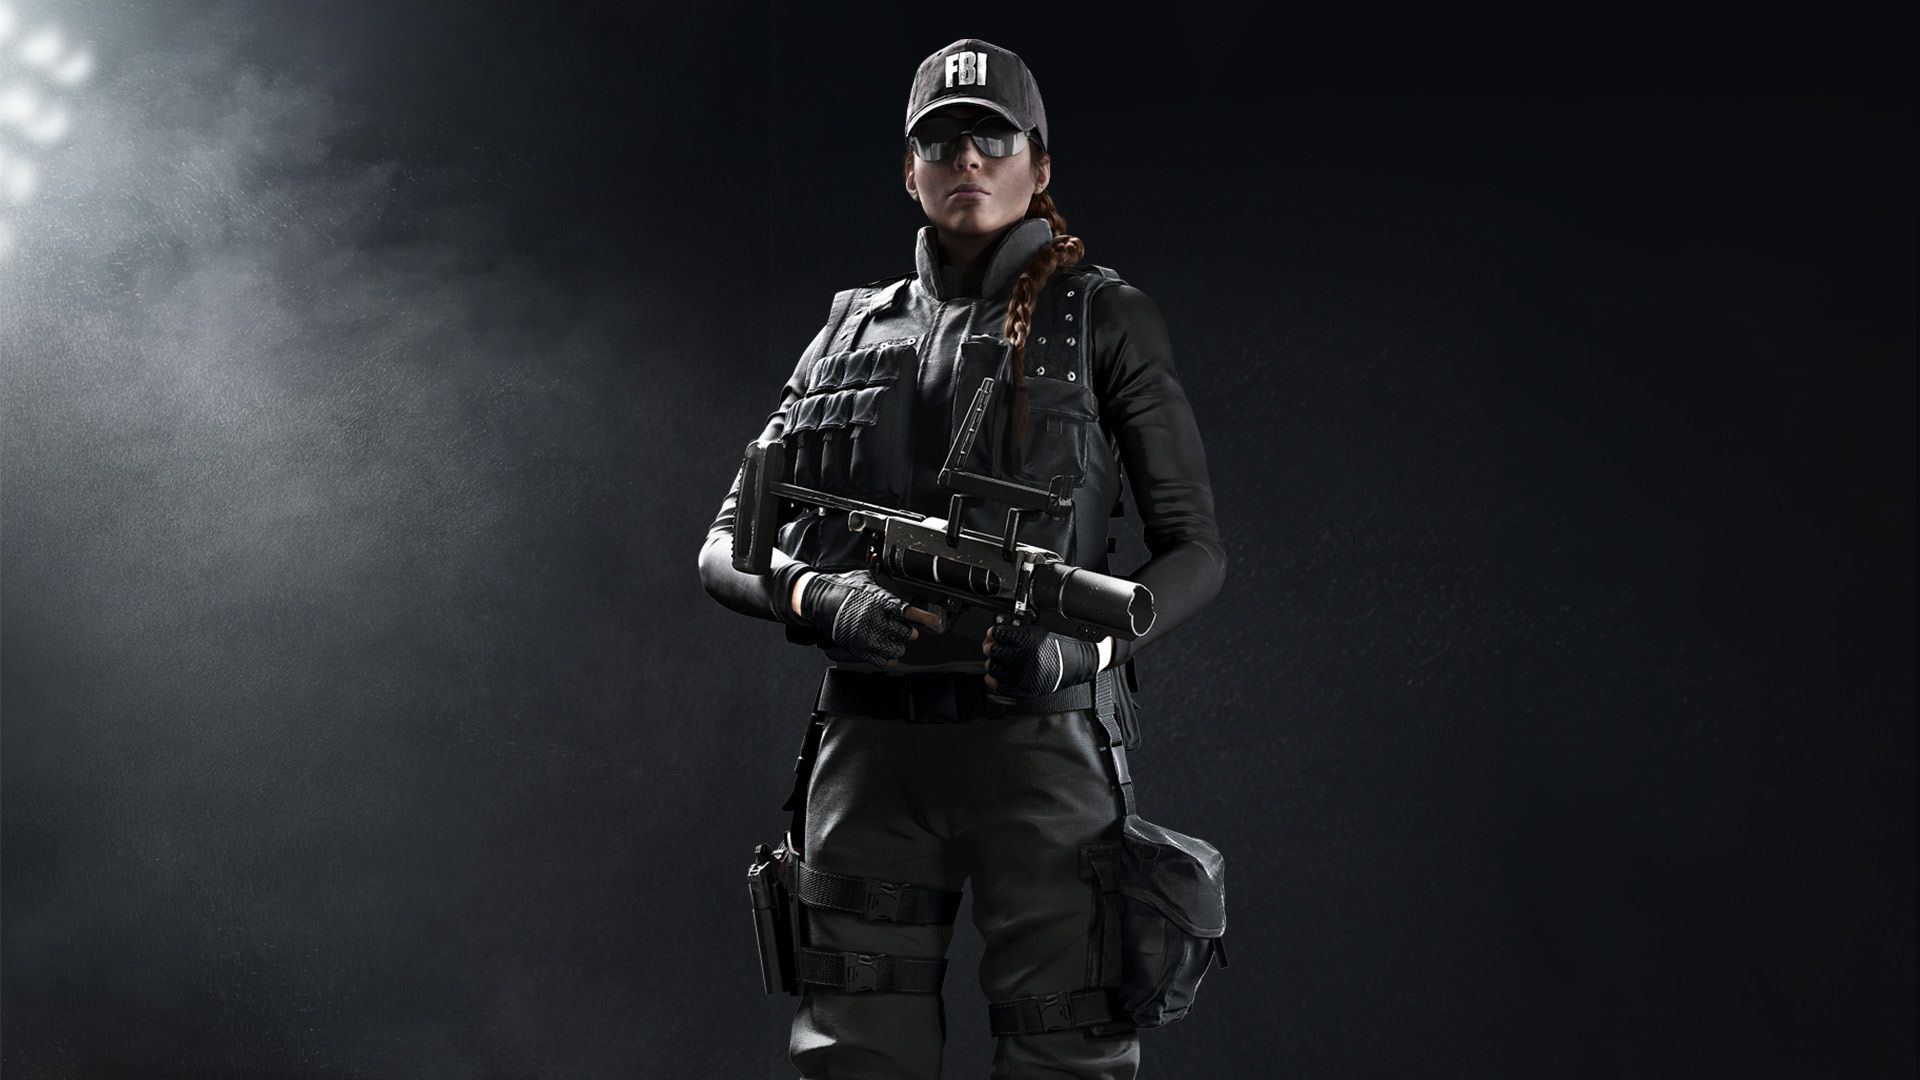 Ash Rainbow Six Siege